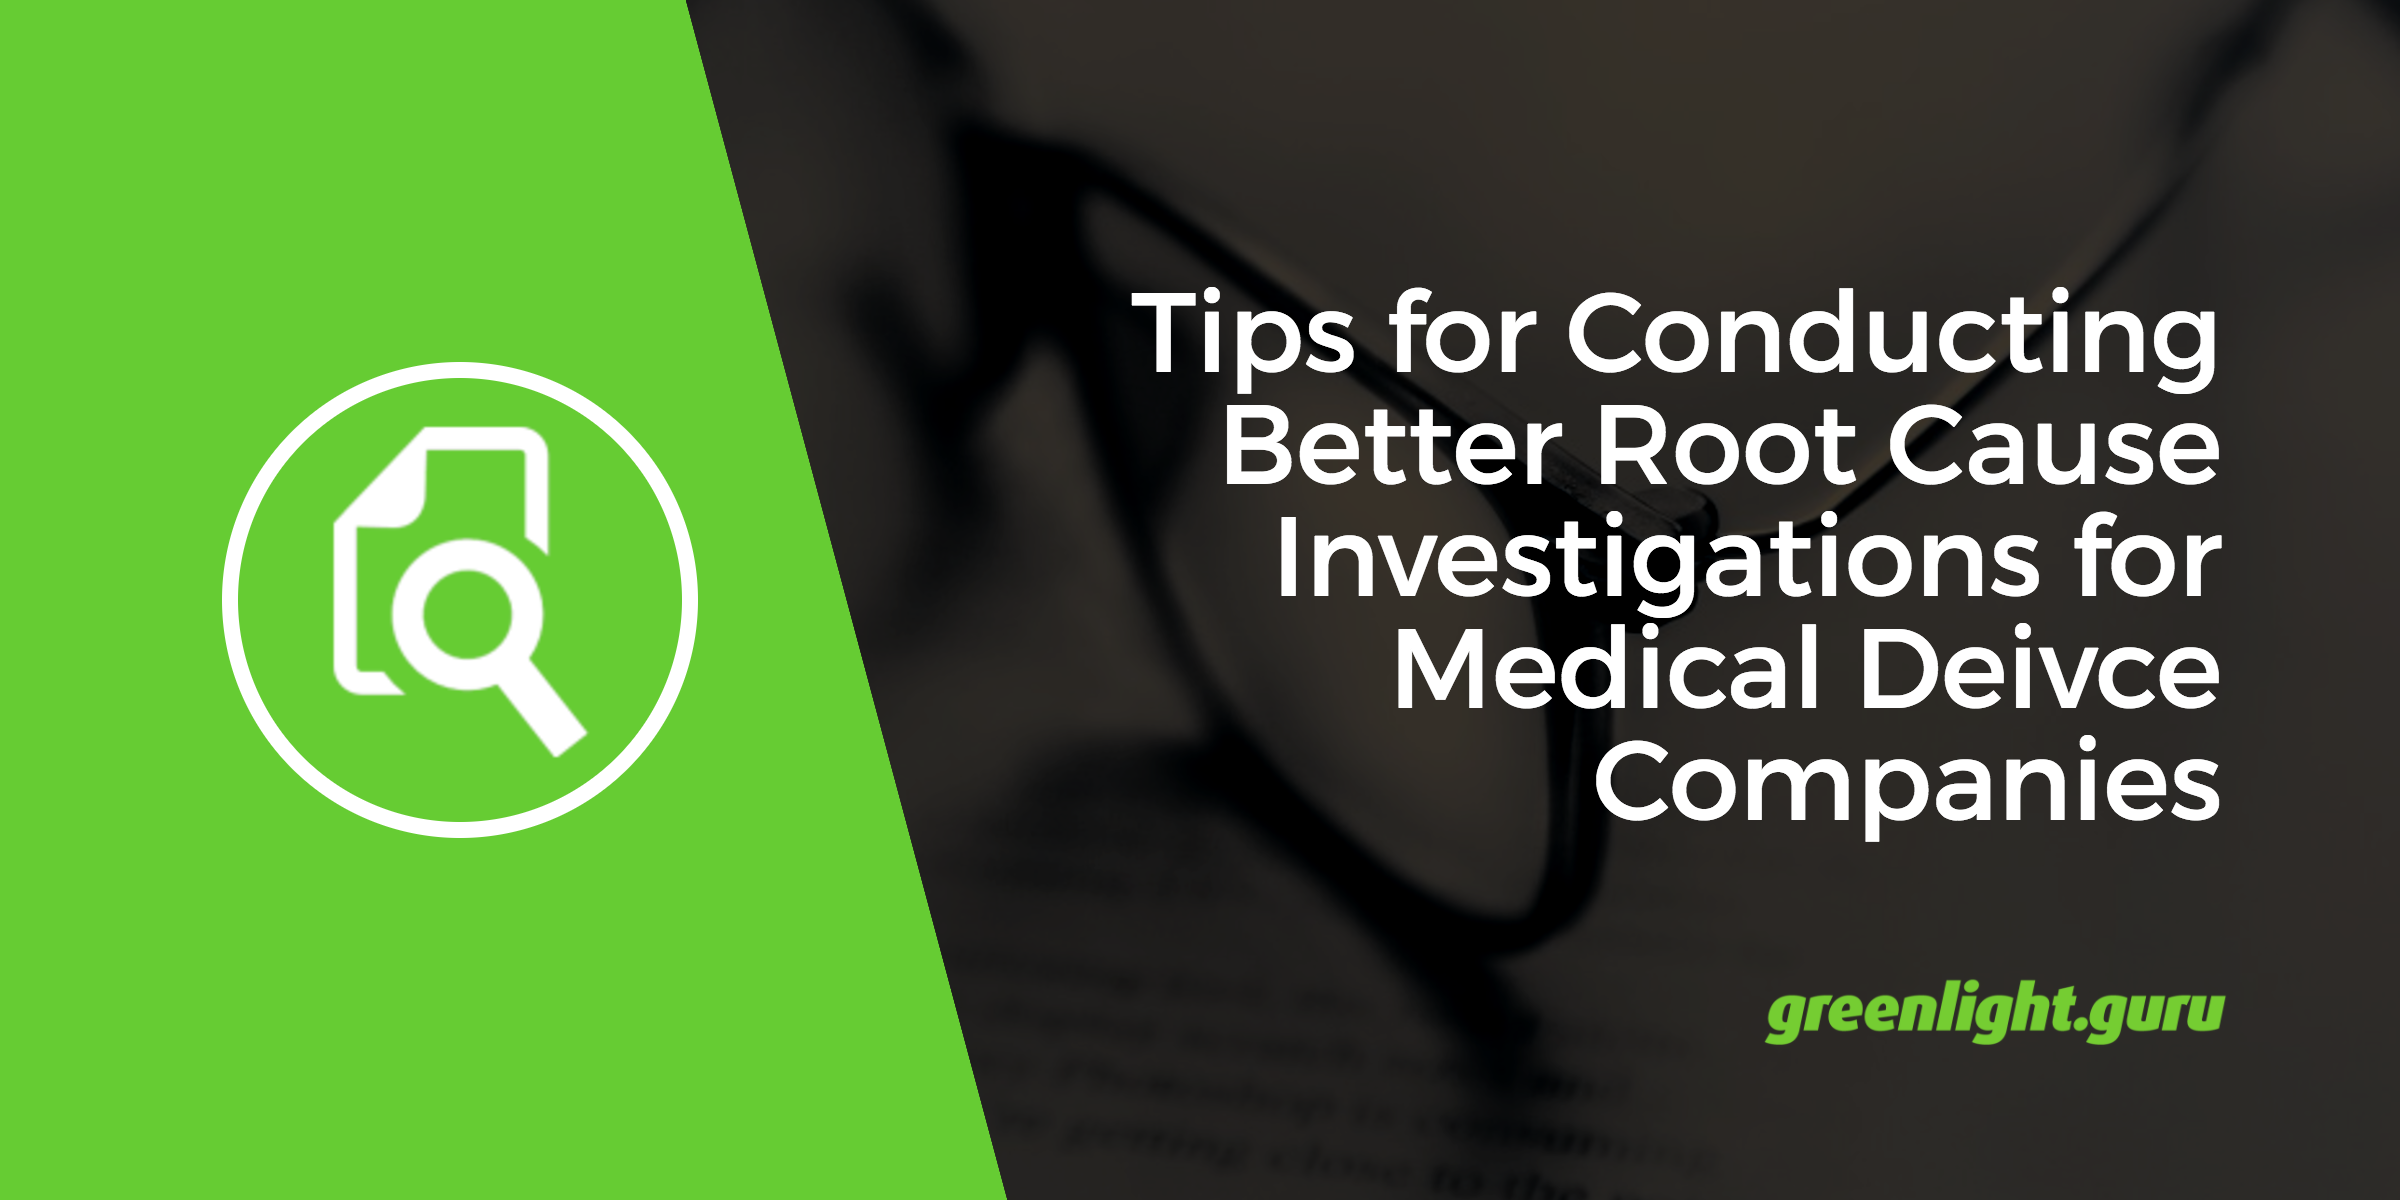 Tips for Conducting Better Root Cause Analysis for Medical Device Companies - Featured Image